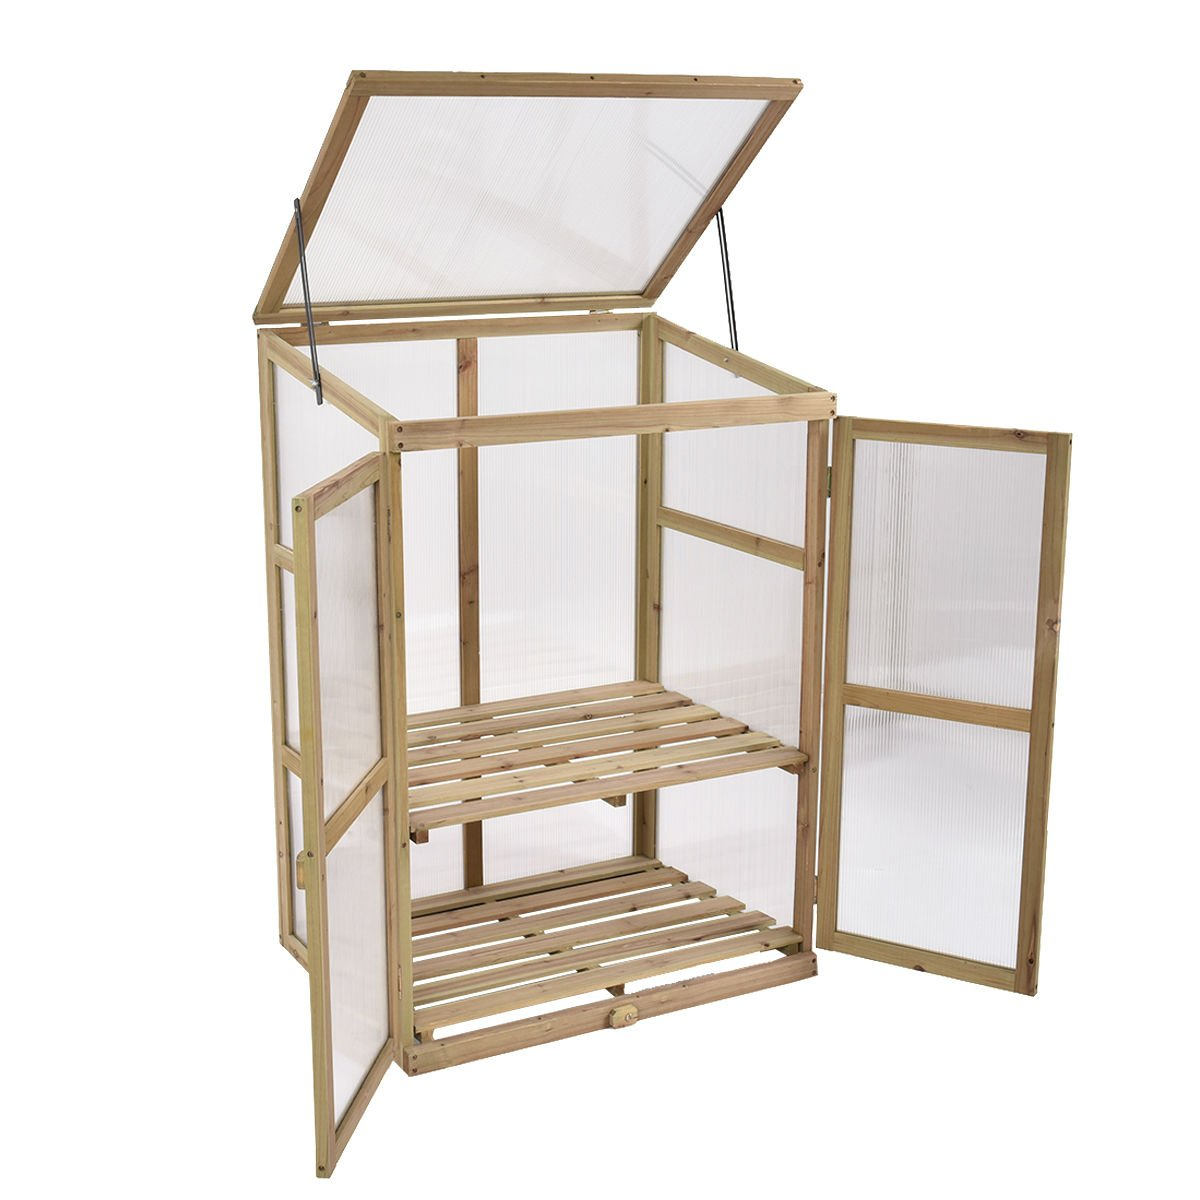 KCHEX>Garden Portable Wooden Greenhouse Cold Frame Raised Plants Shelves Protection>This Large, Solid Wooden Greenhouse is Perfect for Extending Your Growing Season and Protecting Your Plants.